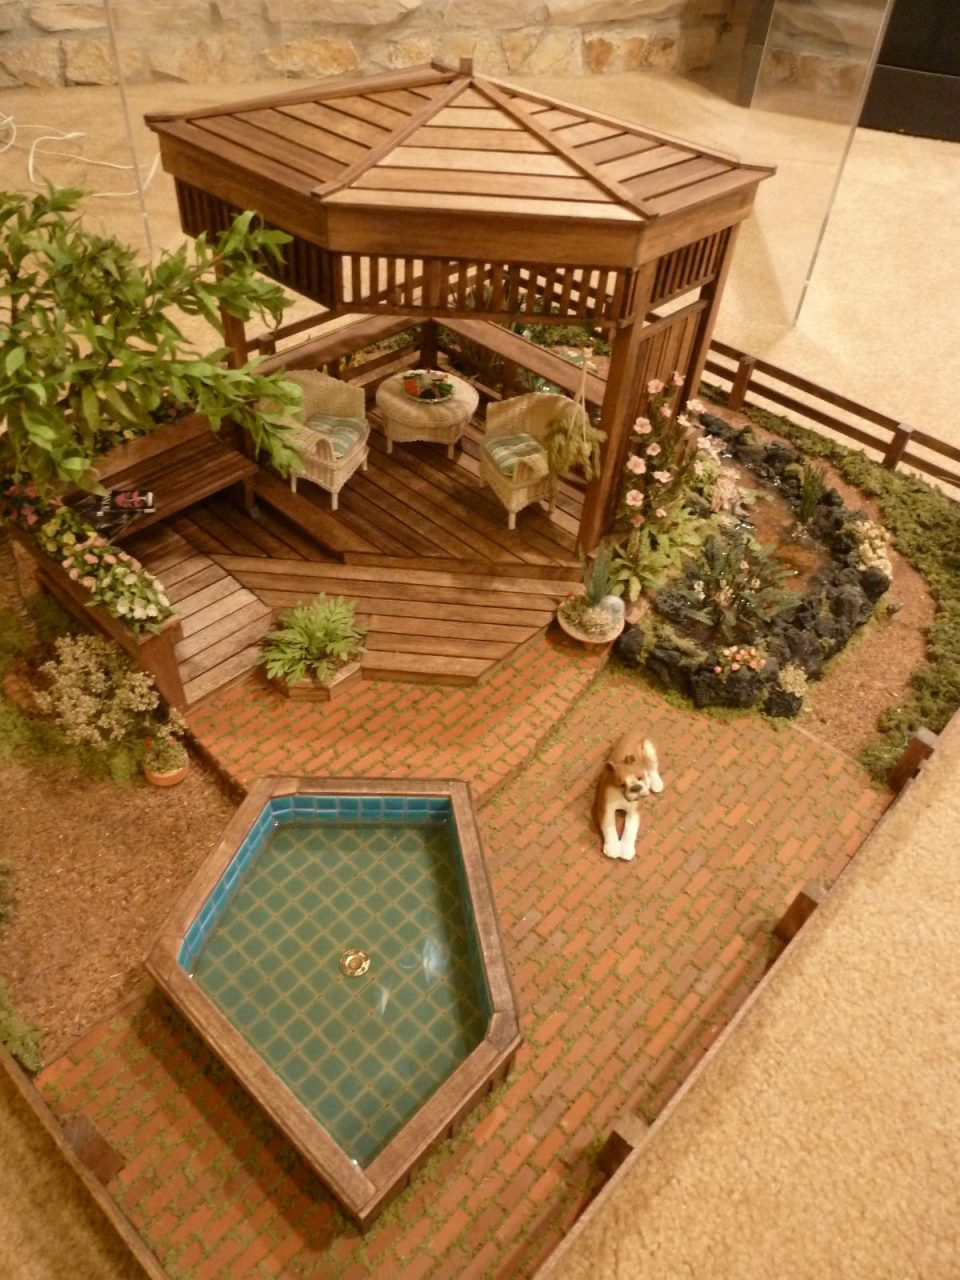 Beautiful Miniature Garden Display Gazebo Jacuzzi Flowers Trees